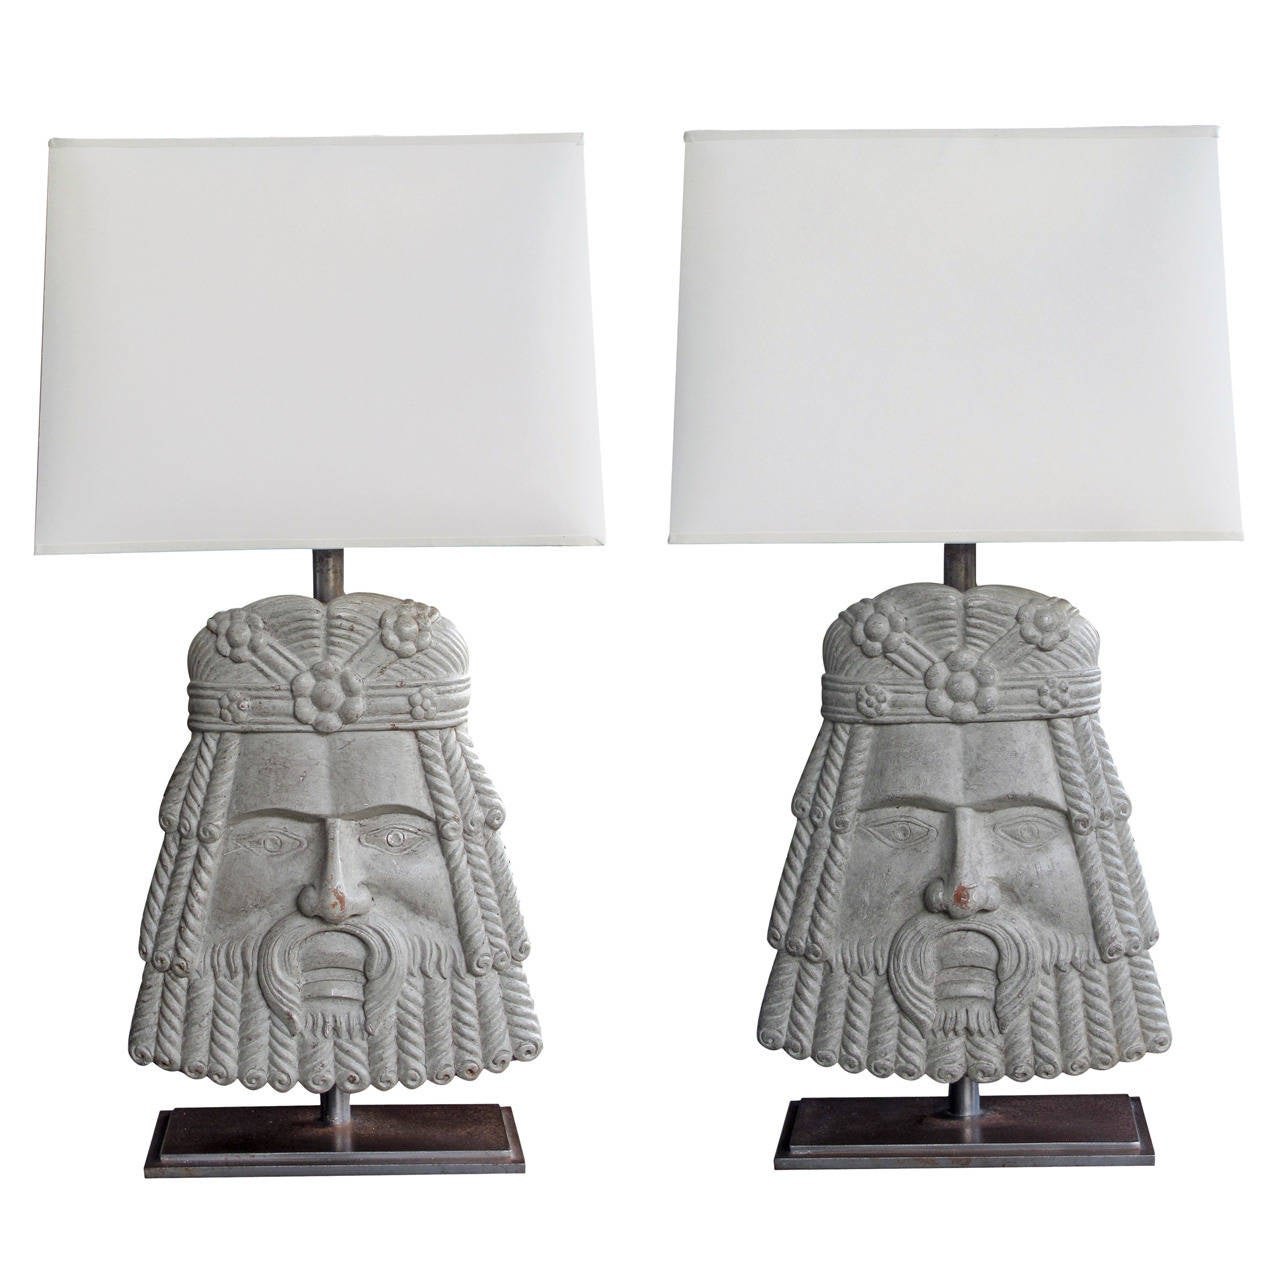 Well-Carved Pair of Italian Romanesque Style Gray Painted Wooden Masks now Lamps